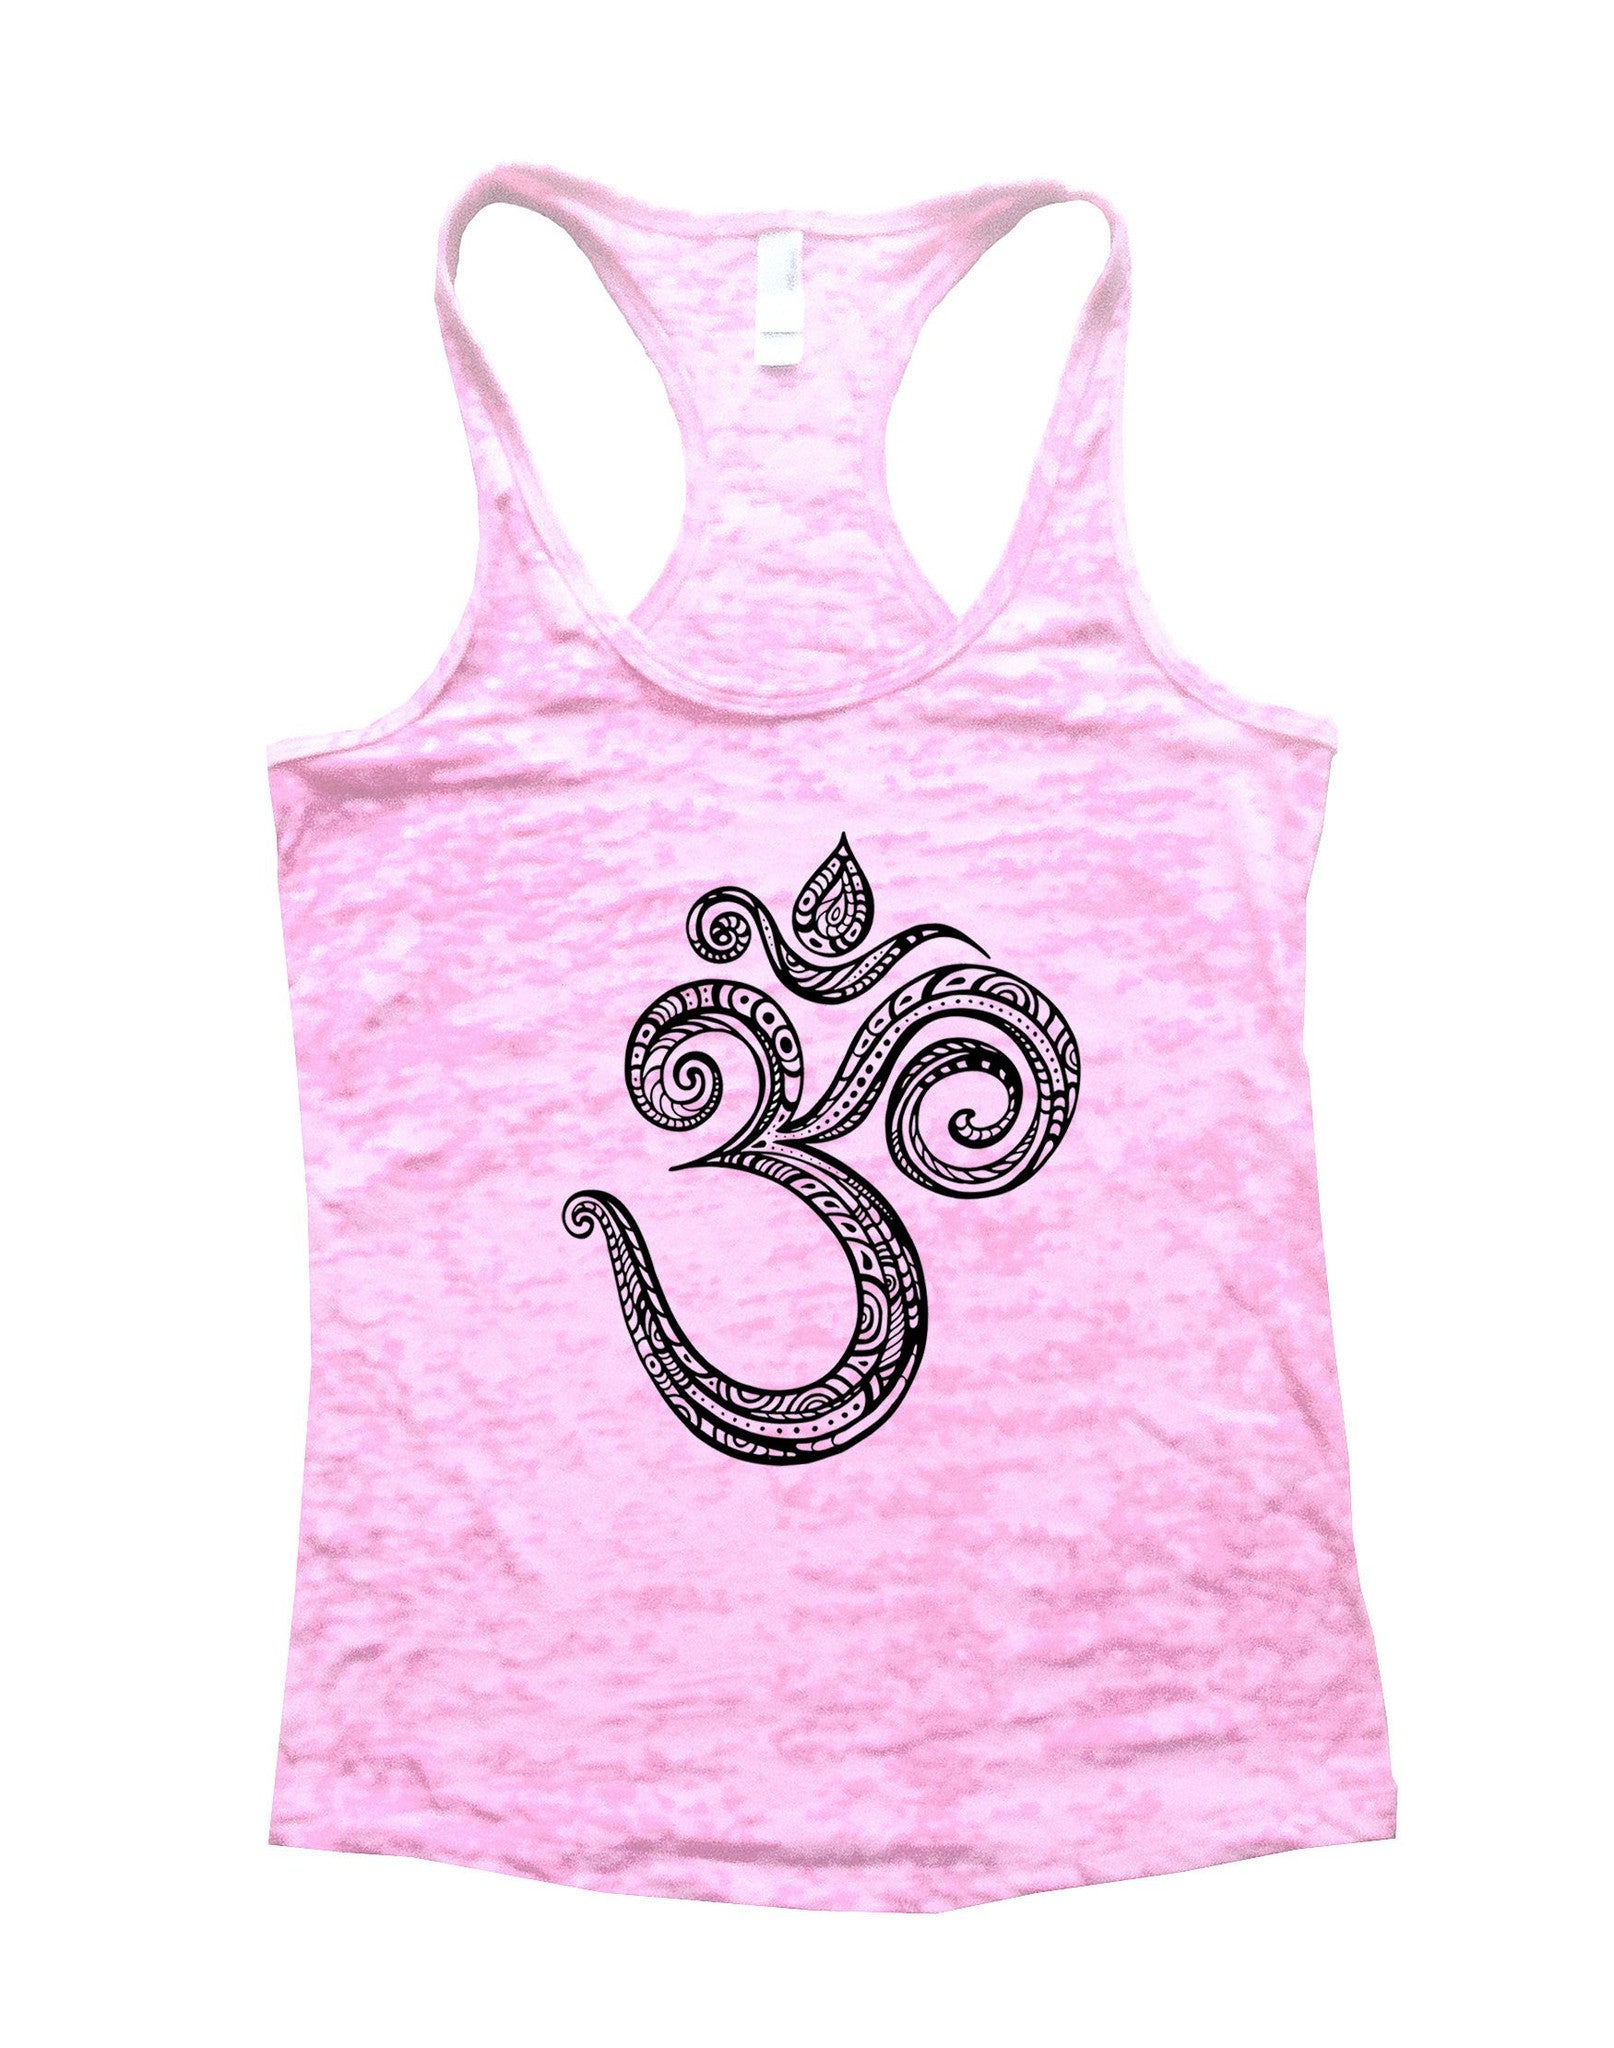 Ohm Burnout Tank Top By BurnoutTankTops.com - 908 - Funny Shirts Tank Tops Burnouts and Triblends  - 1